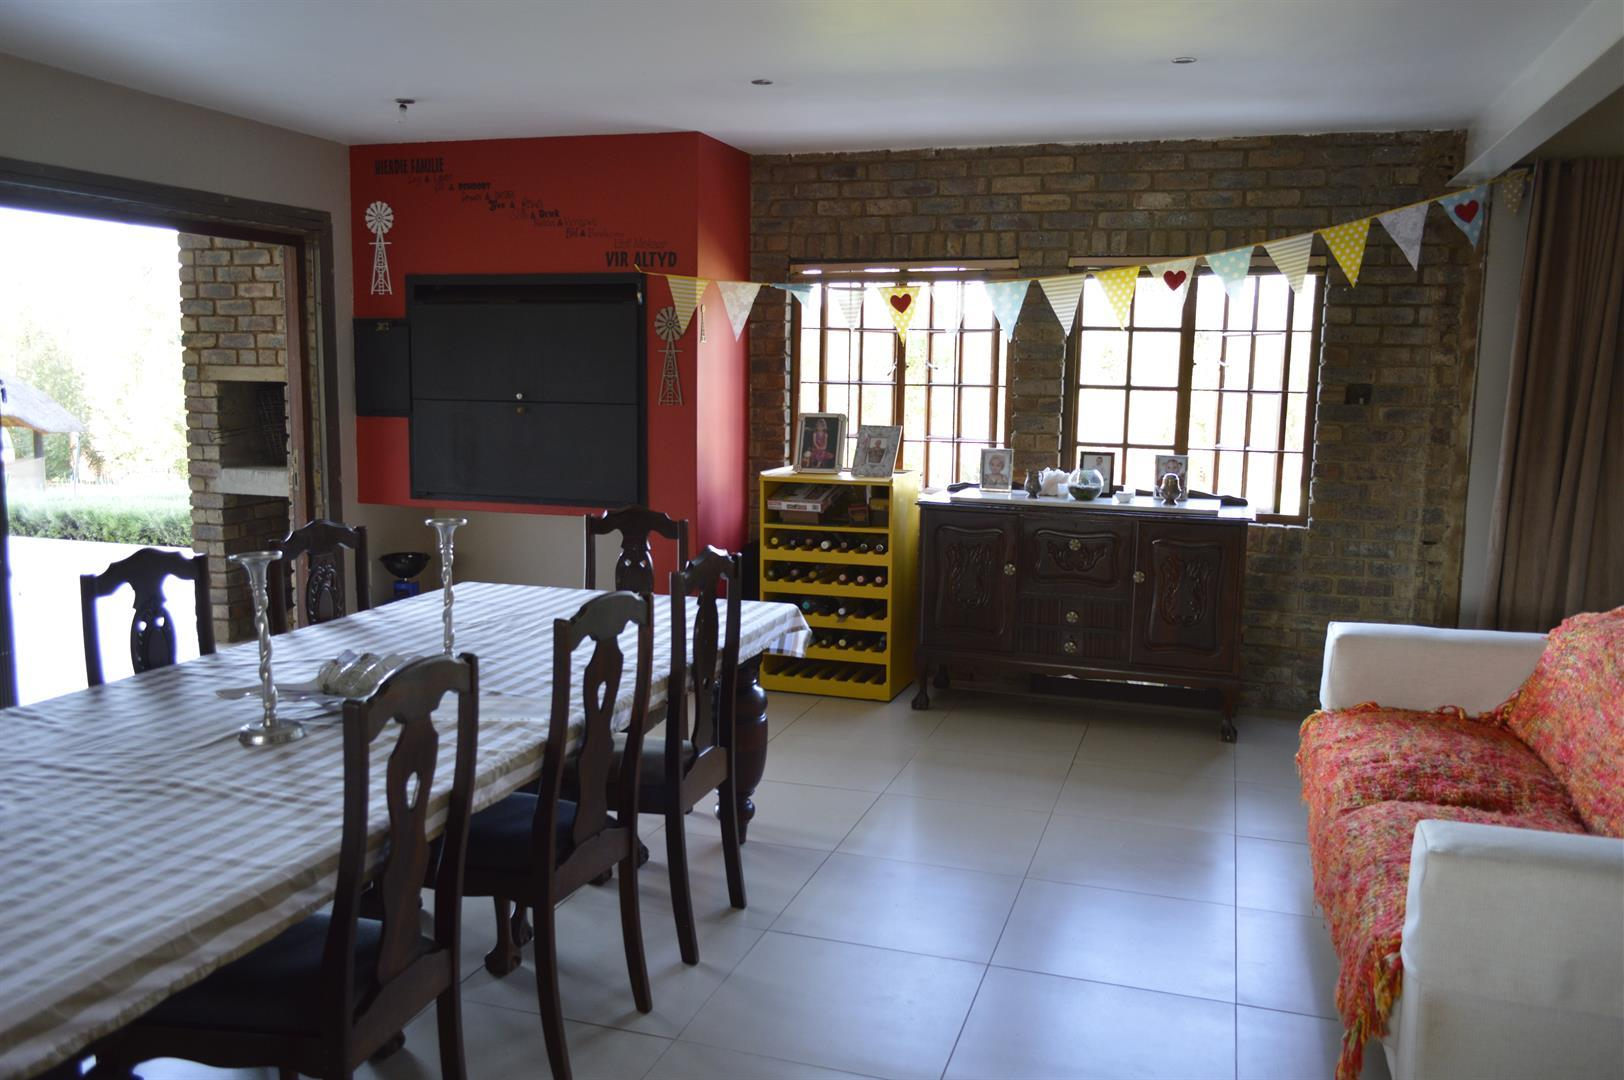 Raslouw A H property for sale. Ref No: 13442161. Picture no 8